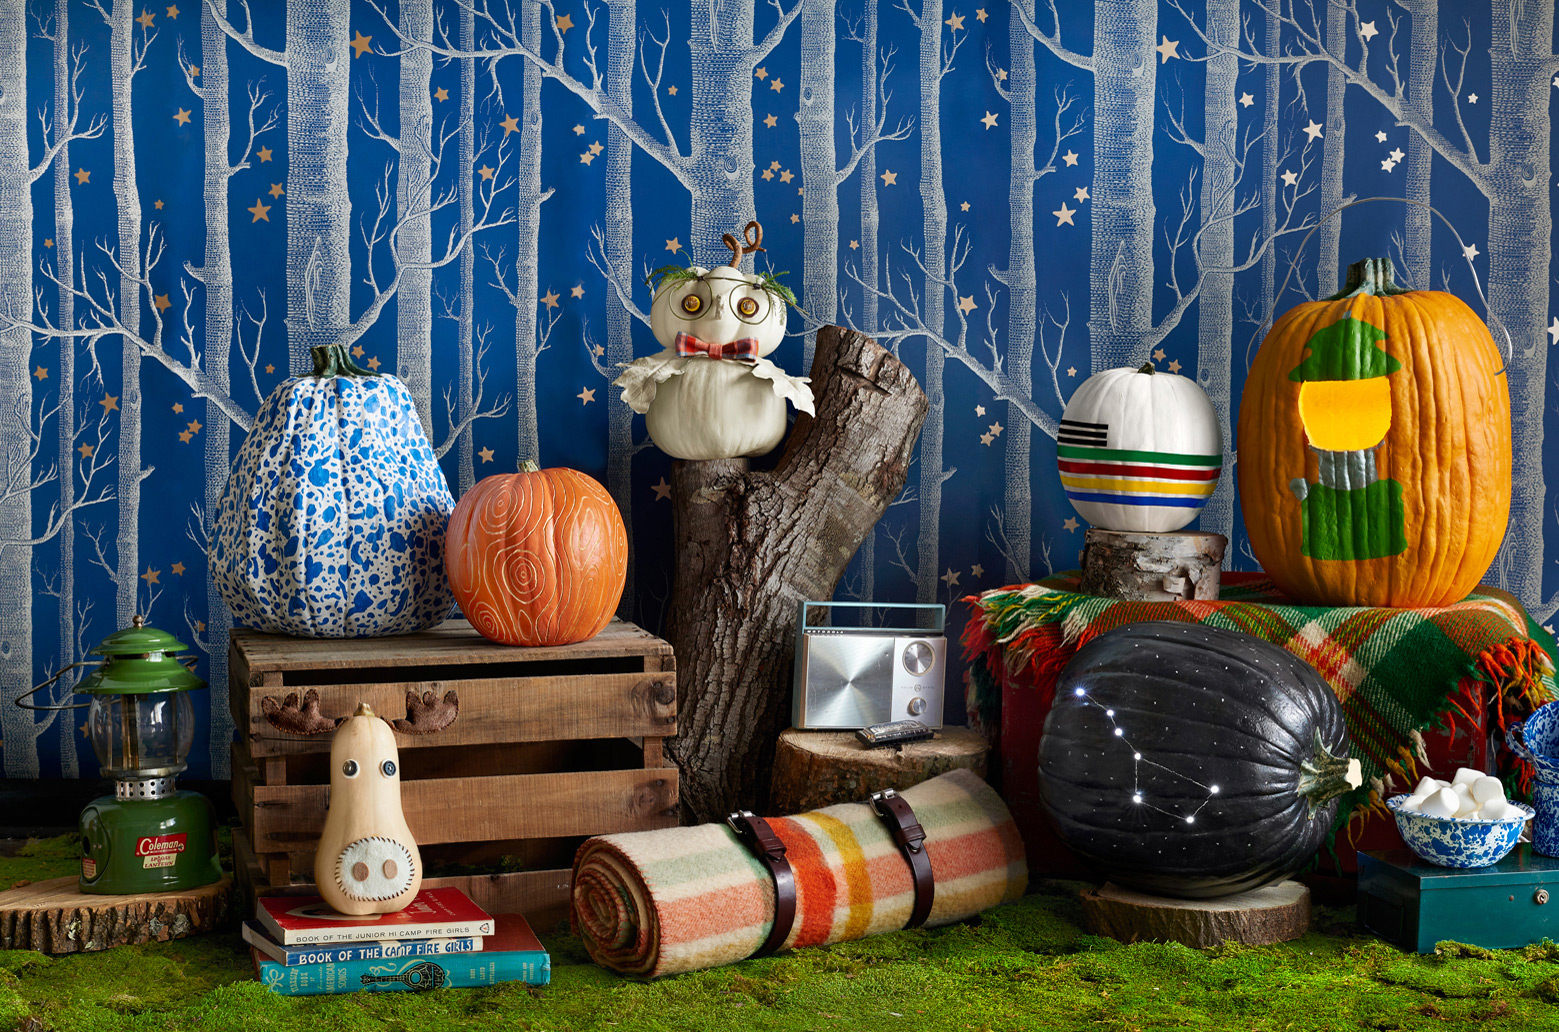 This Halloween window display is focusing more on different types, colors and patterns you cand choose for decorating the pumpkins.